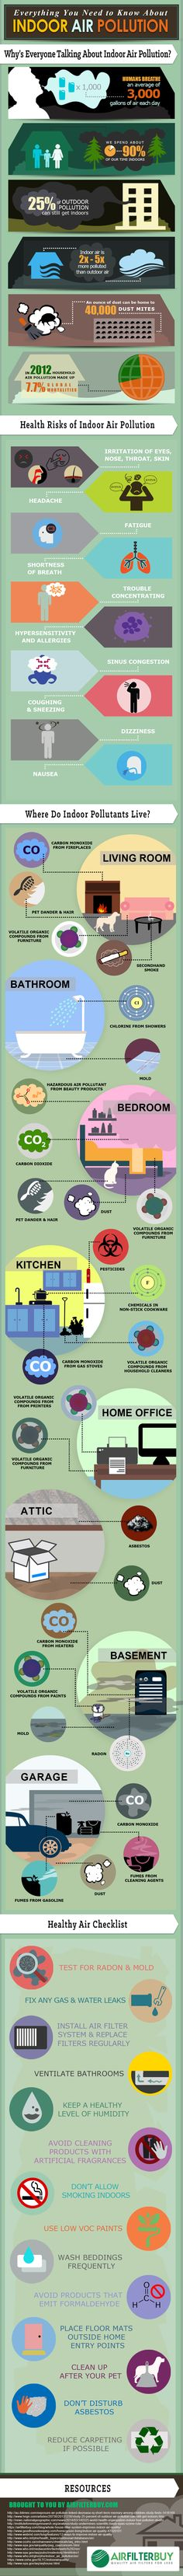 I just had to post this helpful infographic. It shows the major sources of indoor air pollution and how we can take steps to reduce it in our homes. I'm hoping the image of the dust mite will motivate me to wash everyone's sheets and vacuum more often (a girl can dream, right?). Also, this …